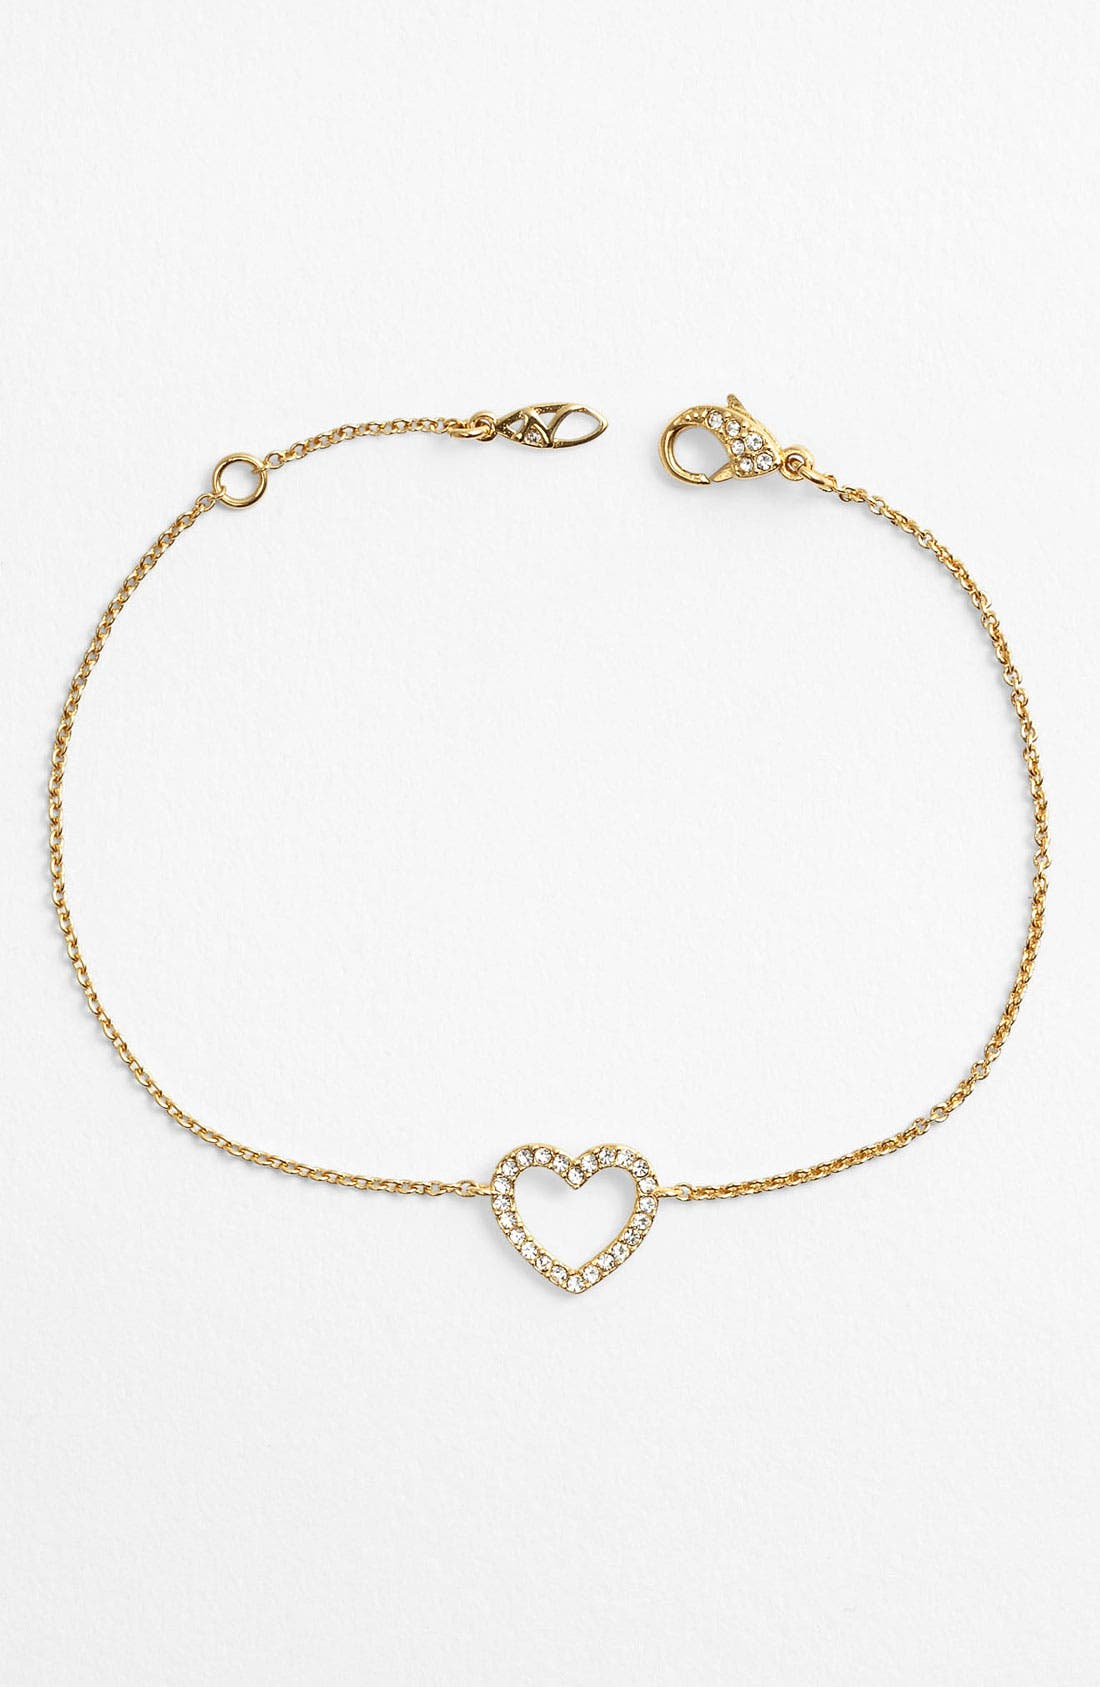 Main Image - Nadri Heart Station Bracelet (Nordstrom Exclusive)